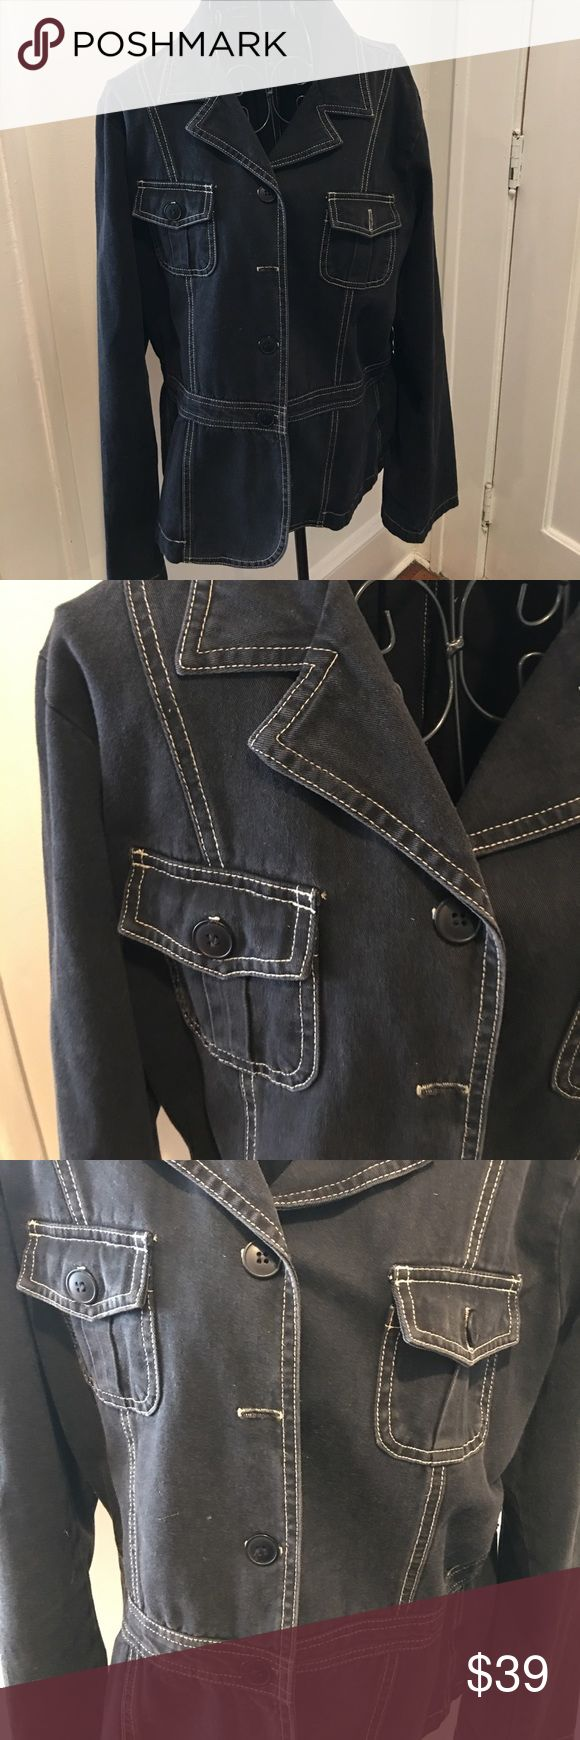 TRUE GRIT JEAN JACKET WITH STYLE XL ONE OF FOUR FRONT BUTTONS MISSING. COULD TAKE FROM SLEEVE BEIGE STITCHING True Grit Jackets & Coats Jean Jackets